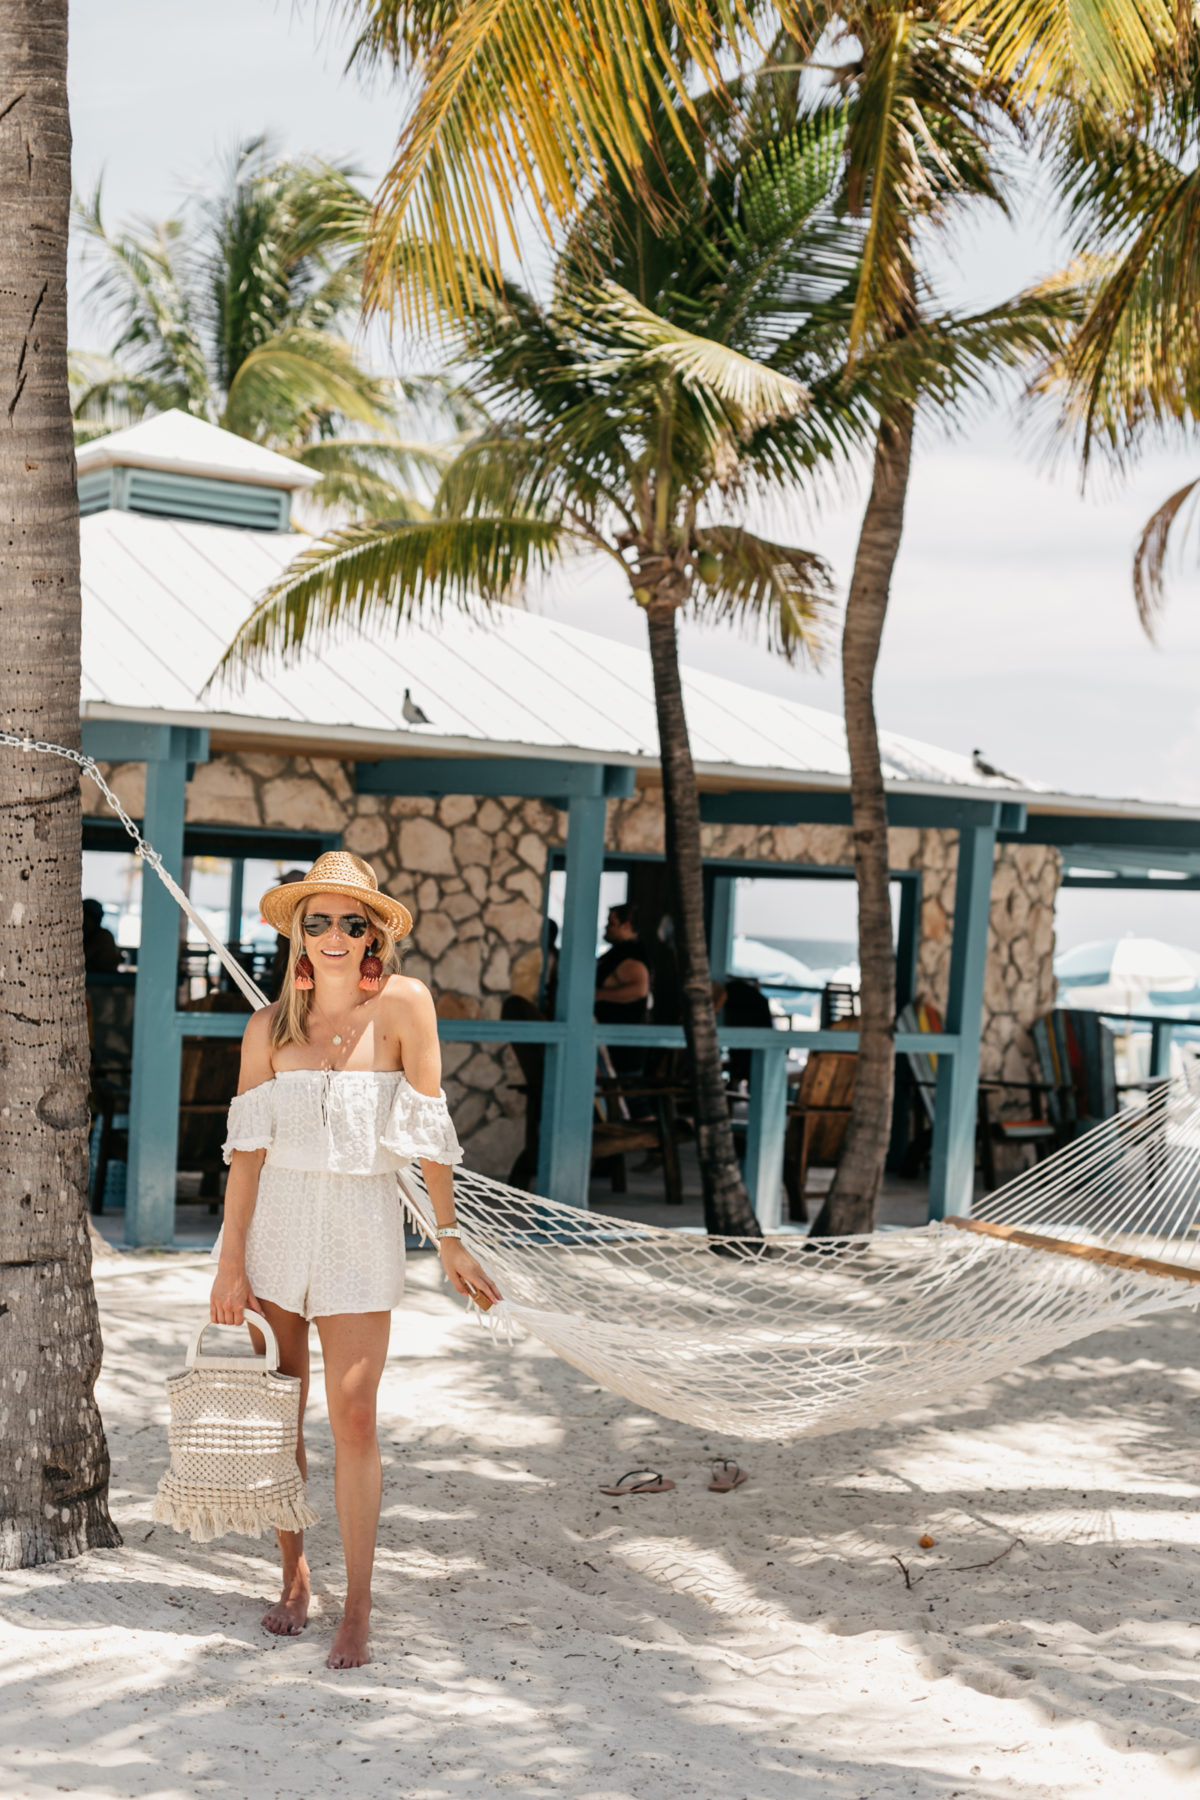 Beach outit: White Off Shoulder Romper // Straw Hat // Macrame Beach Bag // Wooden & Coral Earrings // Gold Crescent / Coin Necklace// Aviator Sunnies